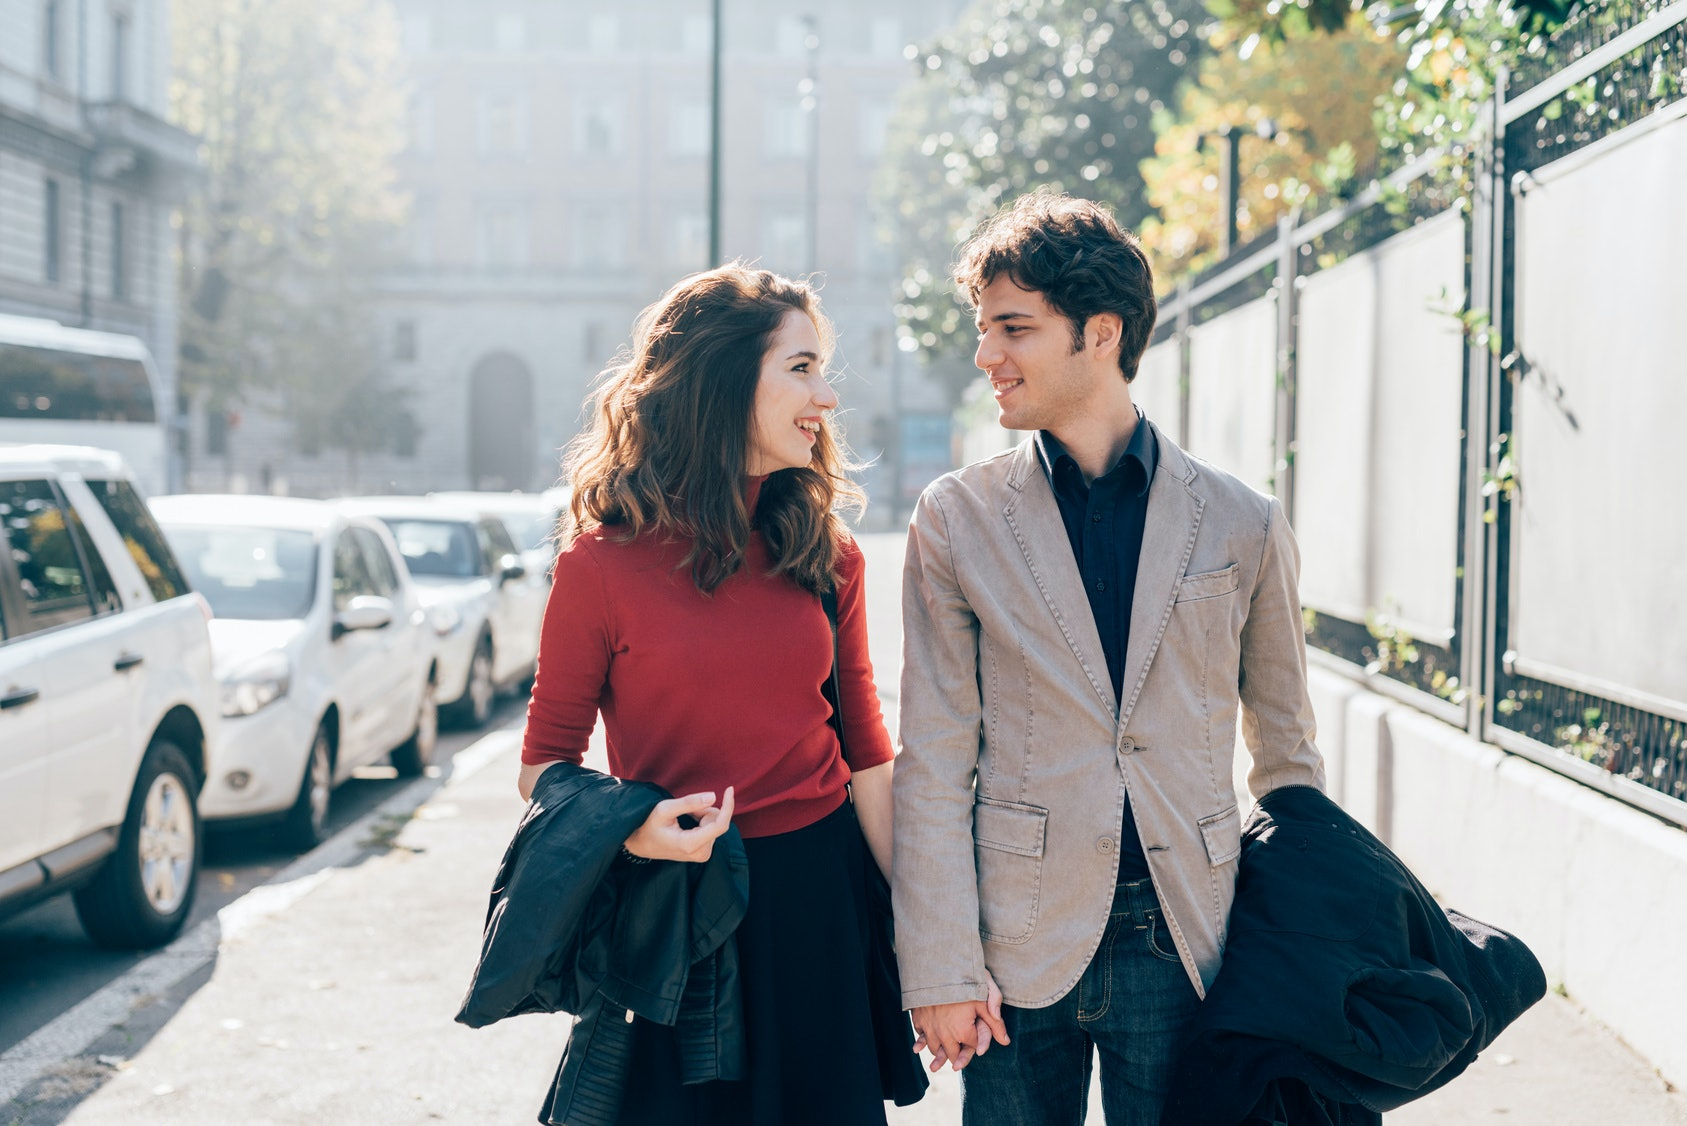 Online dating first date nerves in the body